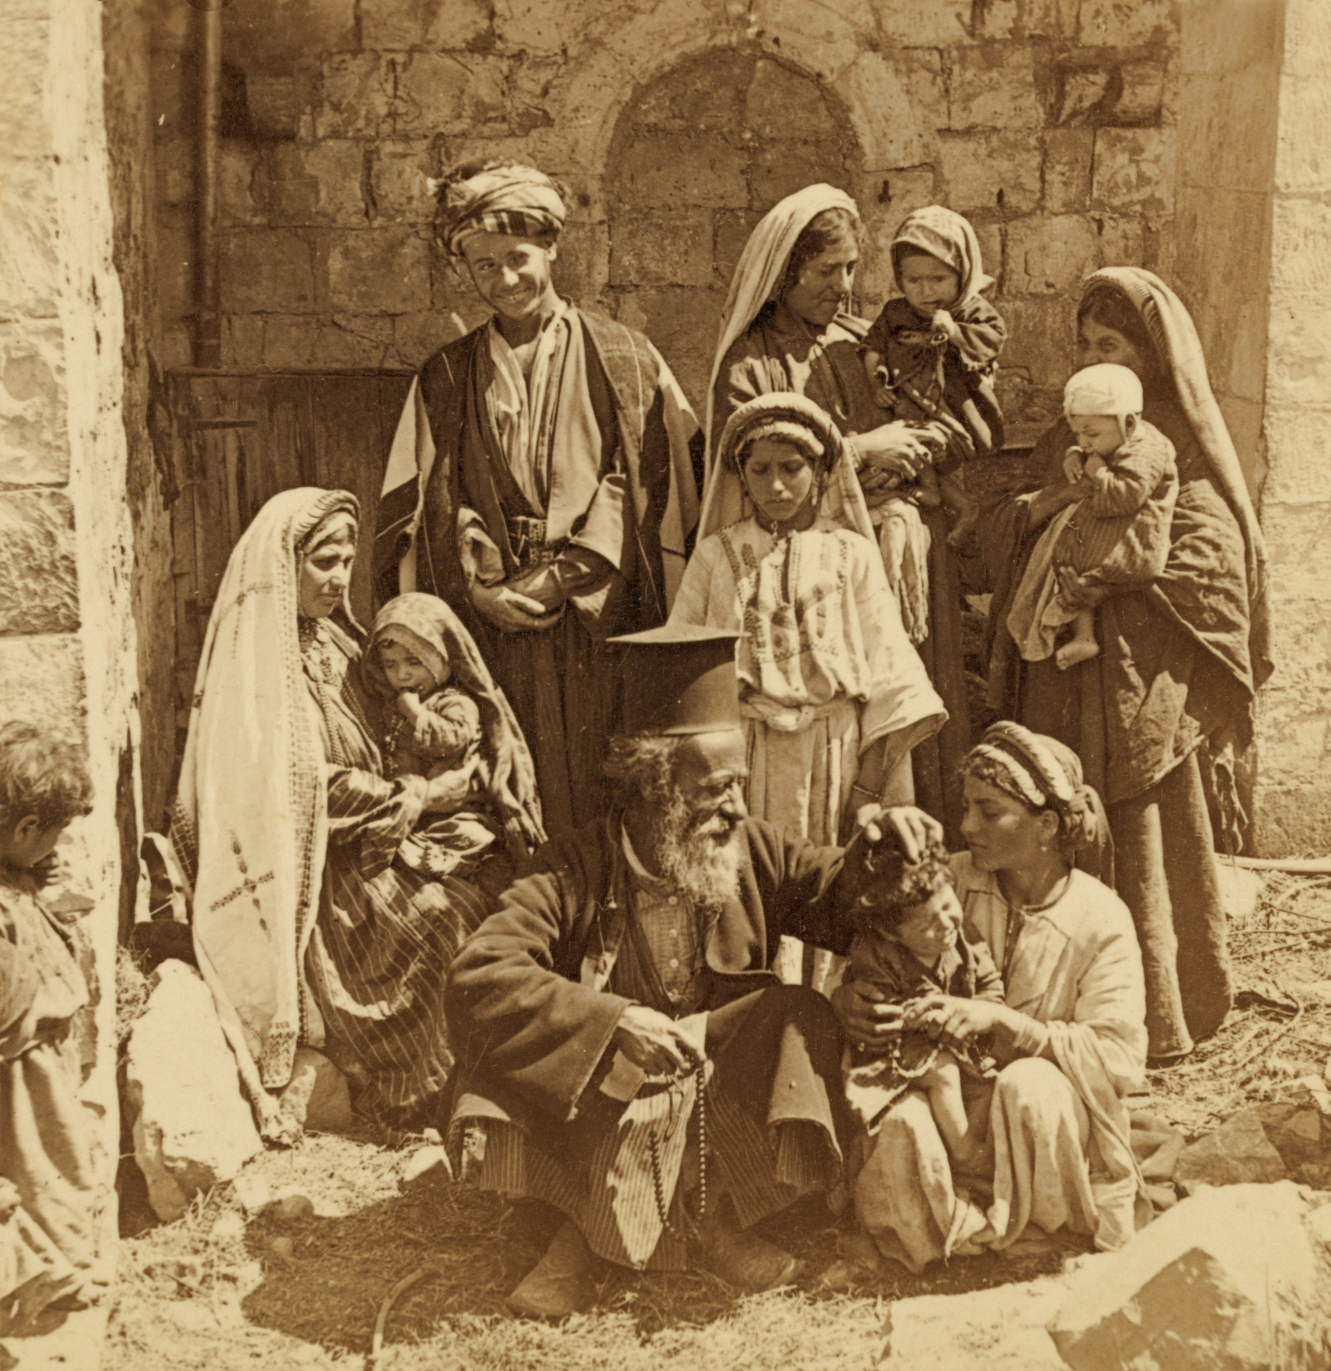 Ramallah - رام الله : RAMALLAH - Greek Orthodox priest blessing a family in Ramallah, palestine, late 19th c. (High Res.)